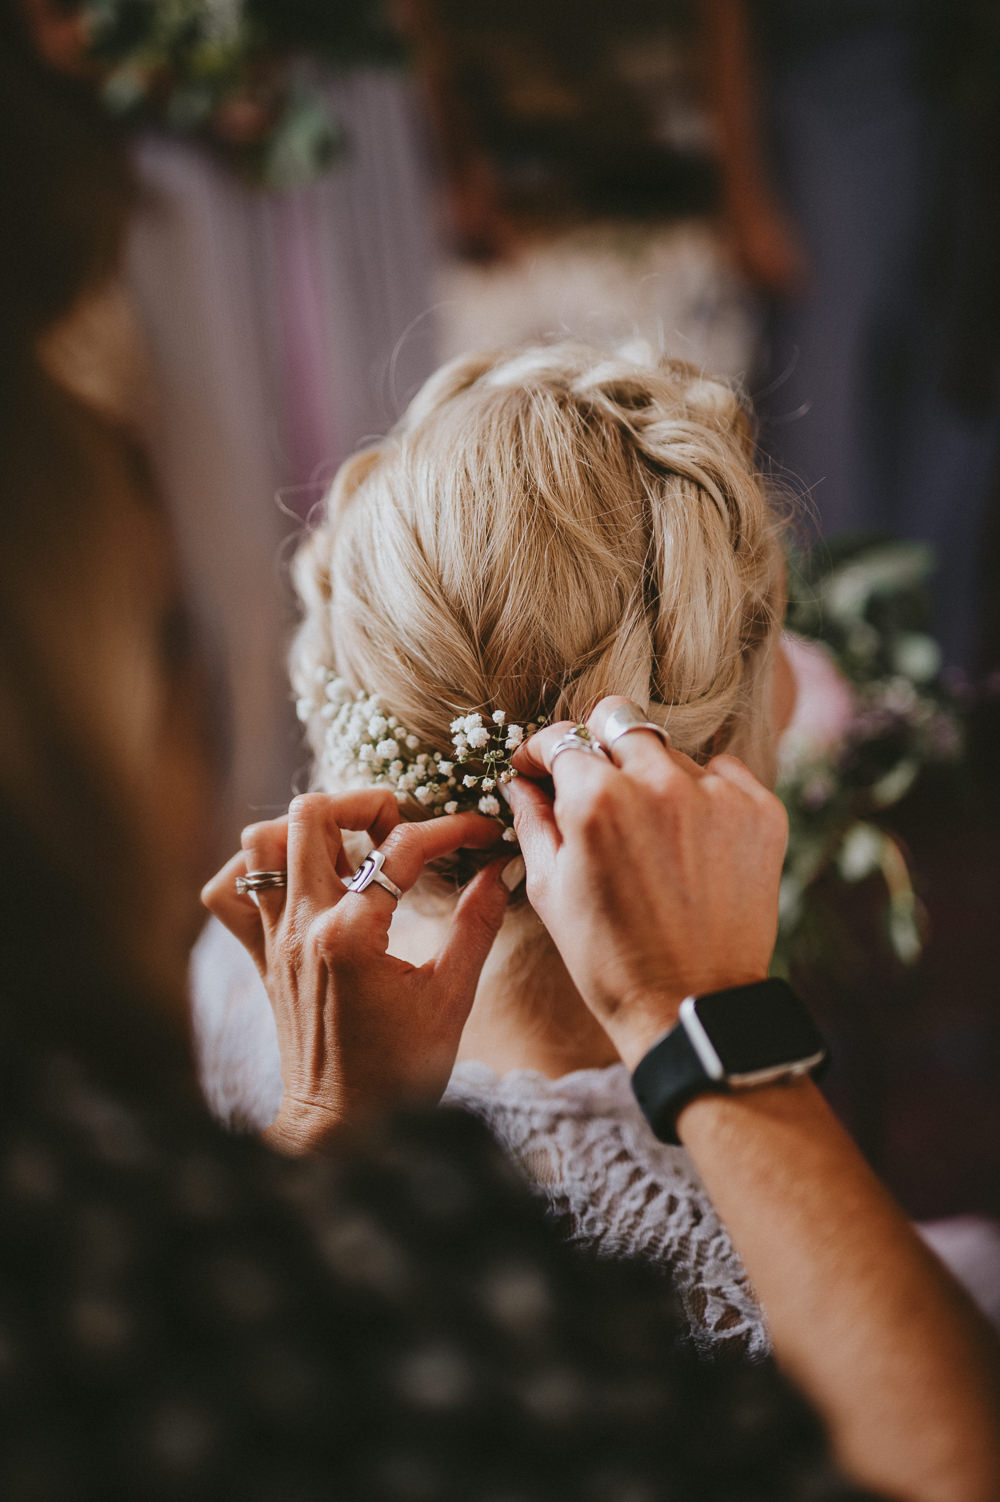 Bridesmaid Bridesmaids Hair Style Up Do Plaits Braids Flowers Chateau Lagorce Wedding Flawless Photography